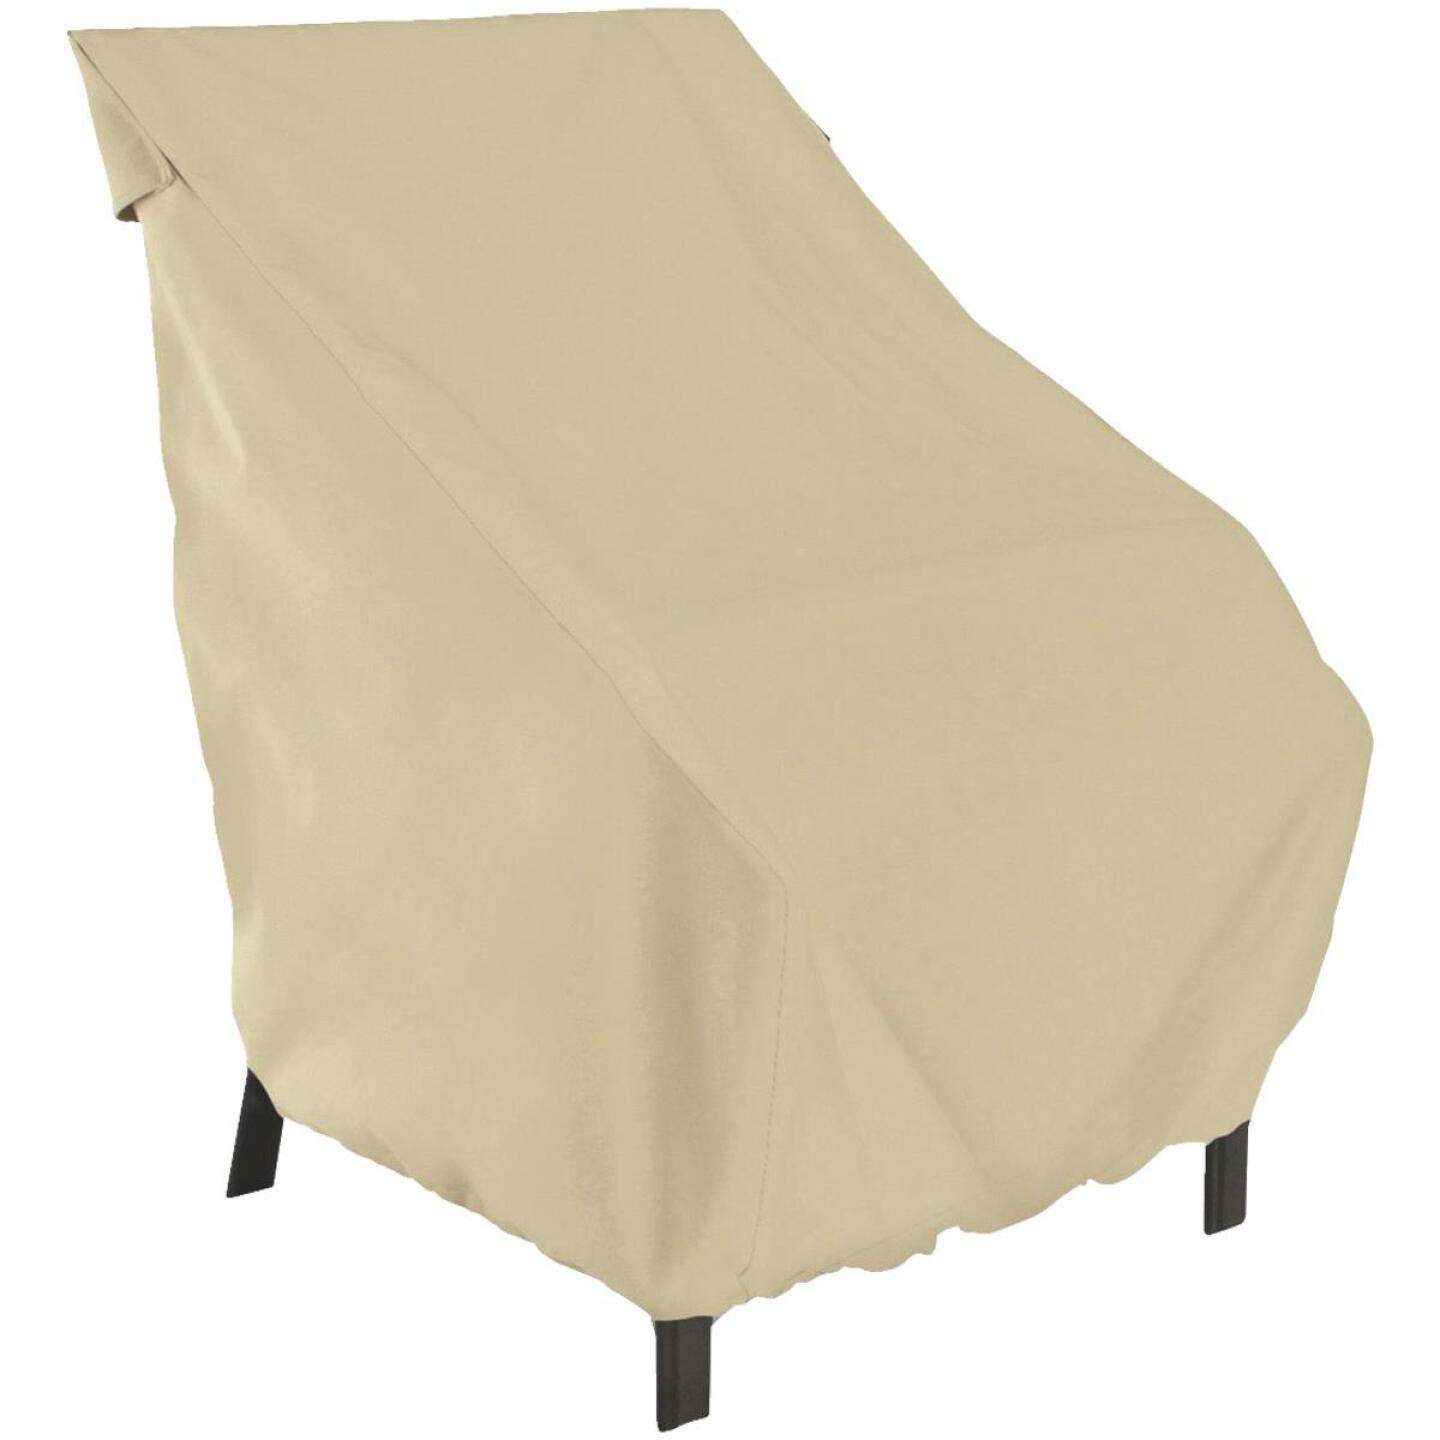 Classic Accessories 25 In. W. x 26 In. H. x 28.5 In. L. Tan Polyester/PVC Chair Cover Image 1